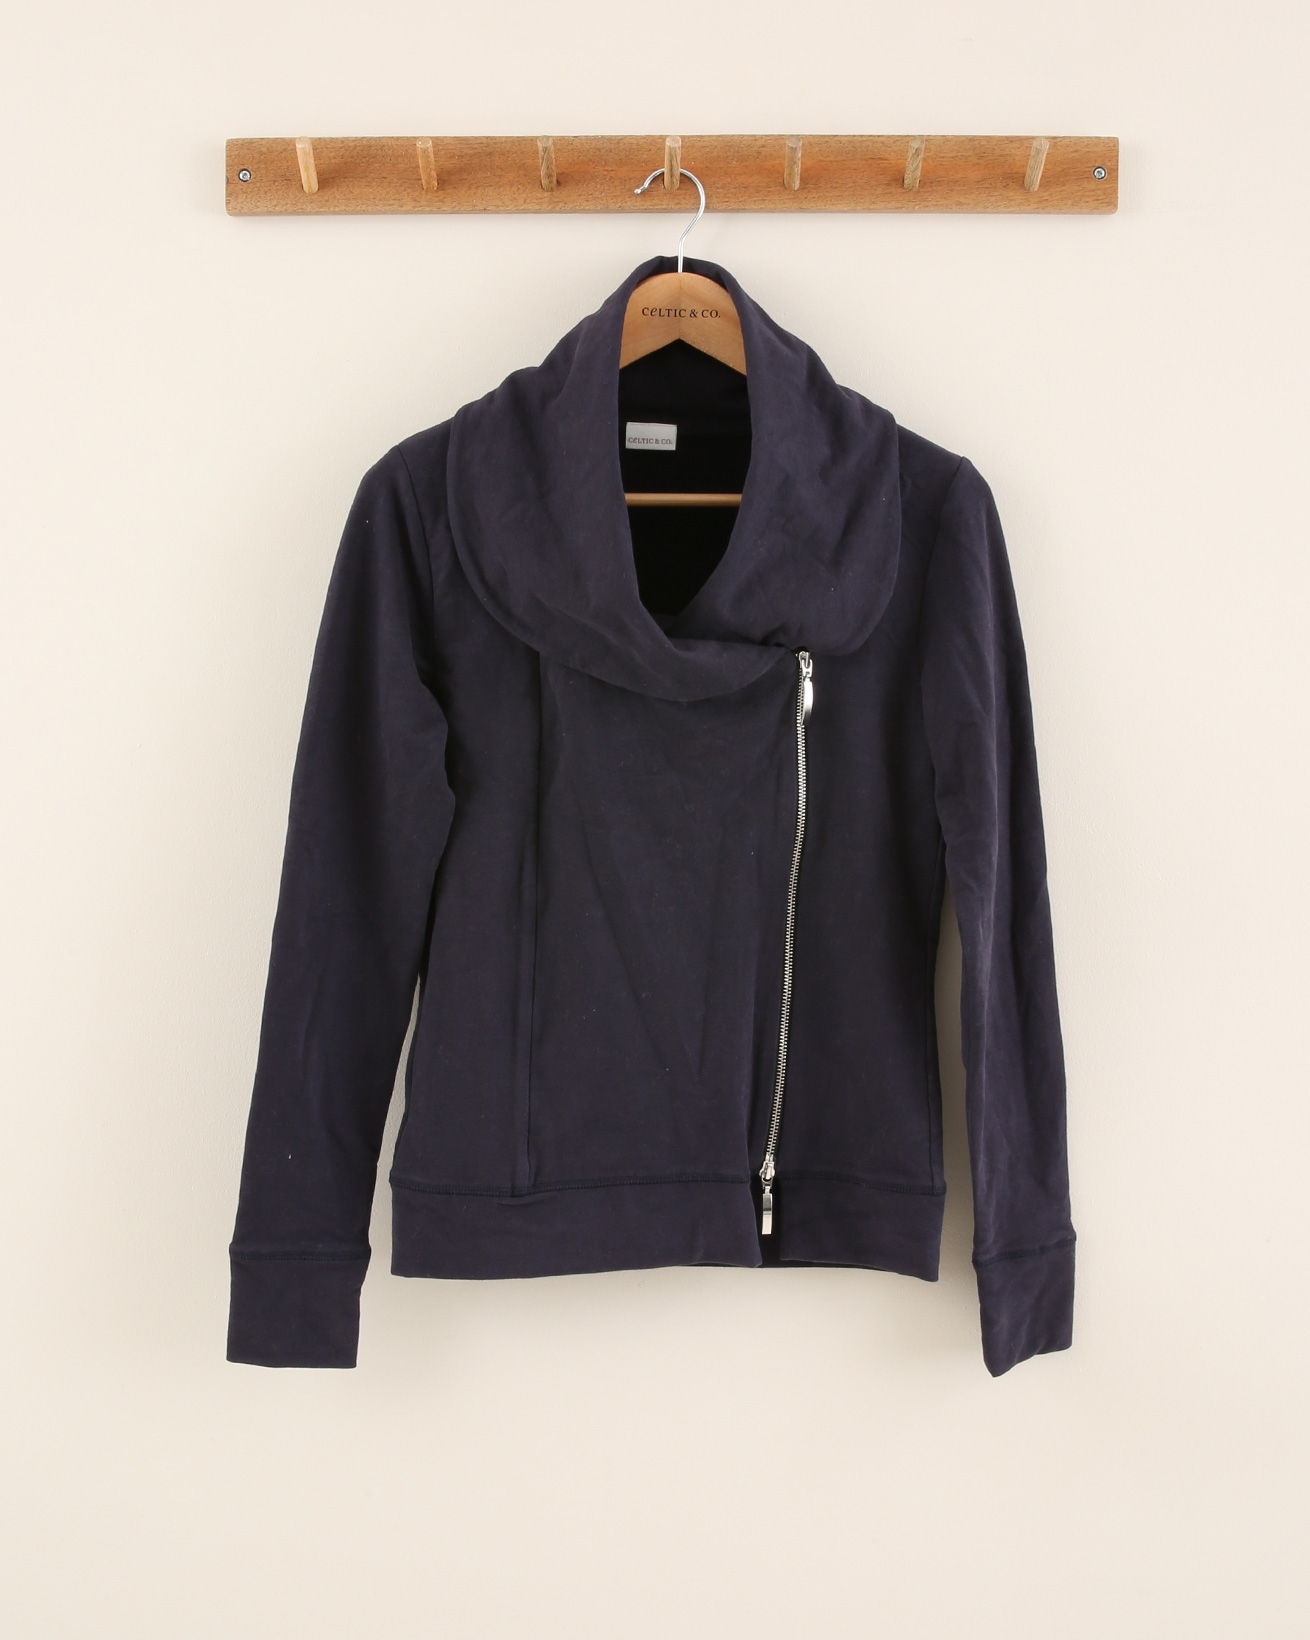 Asymmetric Wide Collar Hoodie - Size Small - Navy - 1862